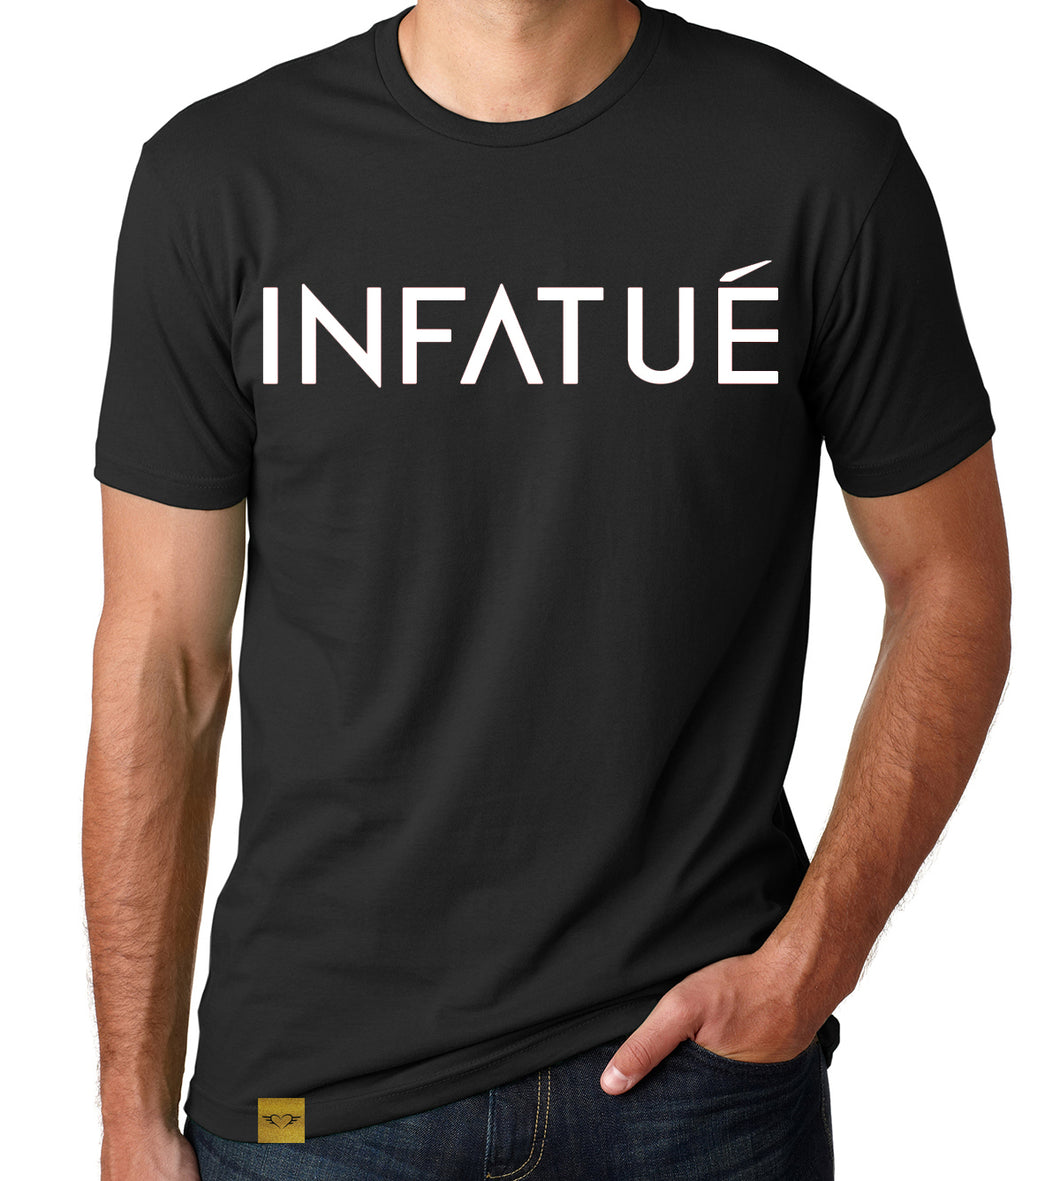 INFATUÉ Definition T-Shirt